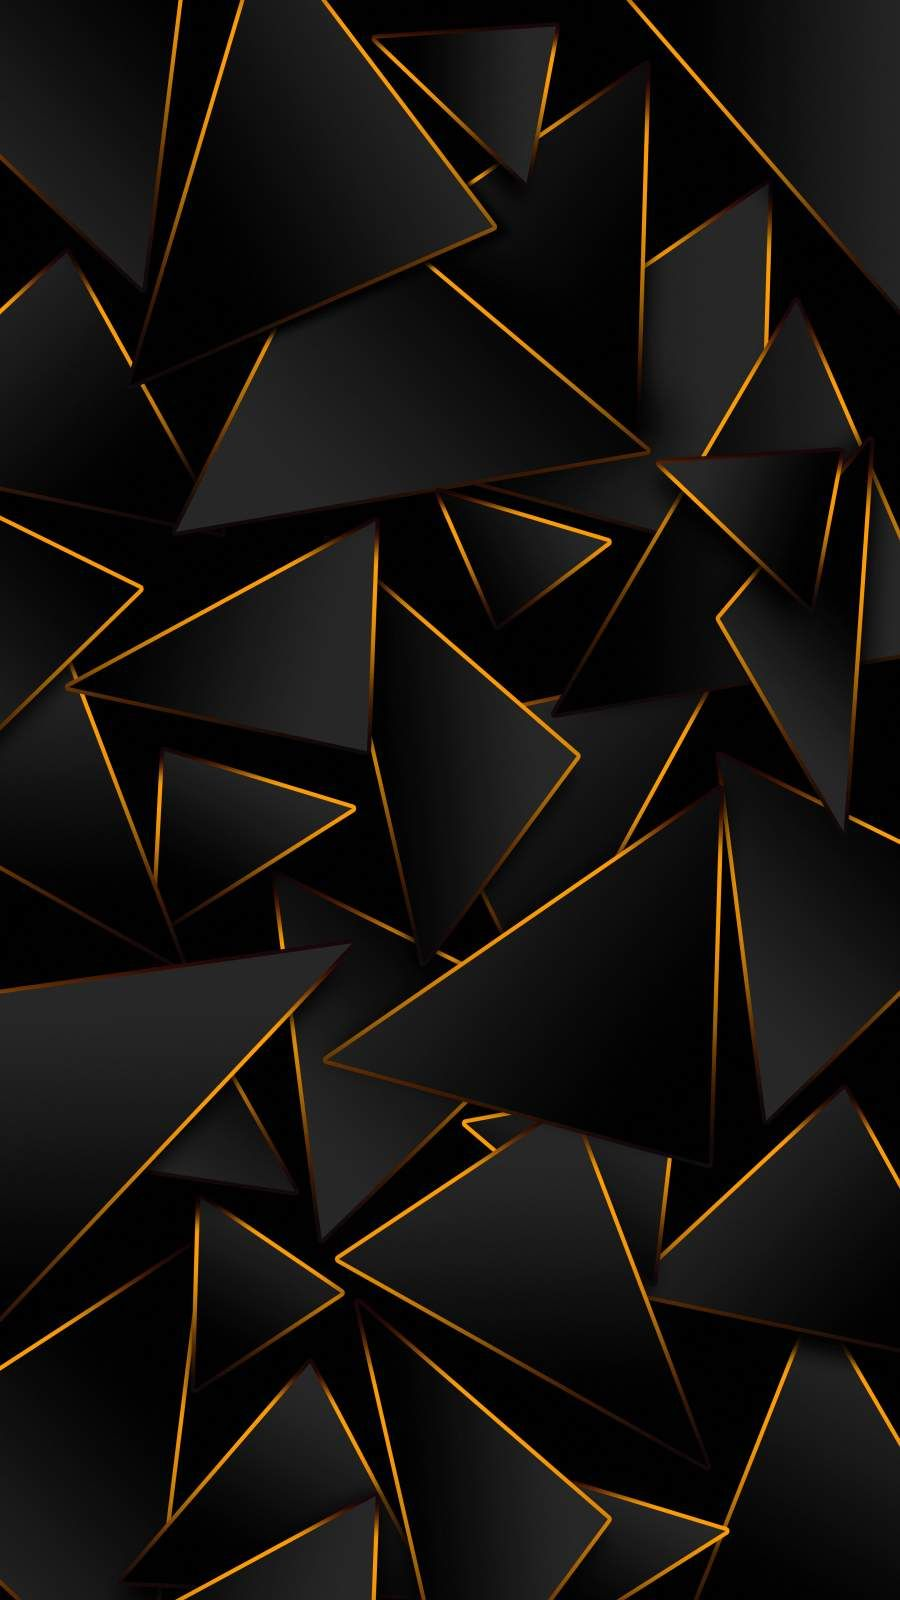 Iphone Wallpapers For Iphone 12 Iphone 11 Iphone X Iphone Xr Iphone 8 Plus High Quality W Galaxy Phone Wallpaper Iphone Wallpaper Abstract Iphone Wallpaper 3d wallpaper iphone x